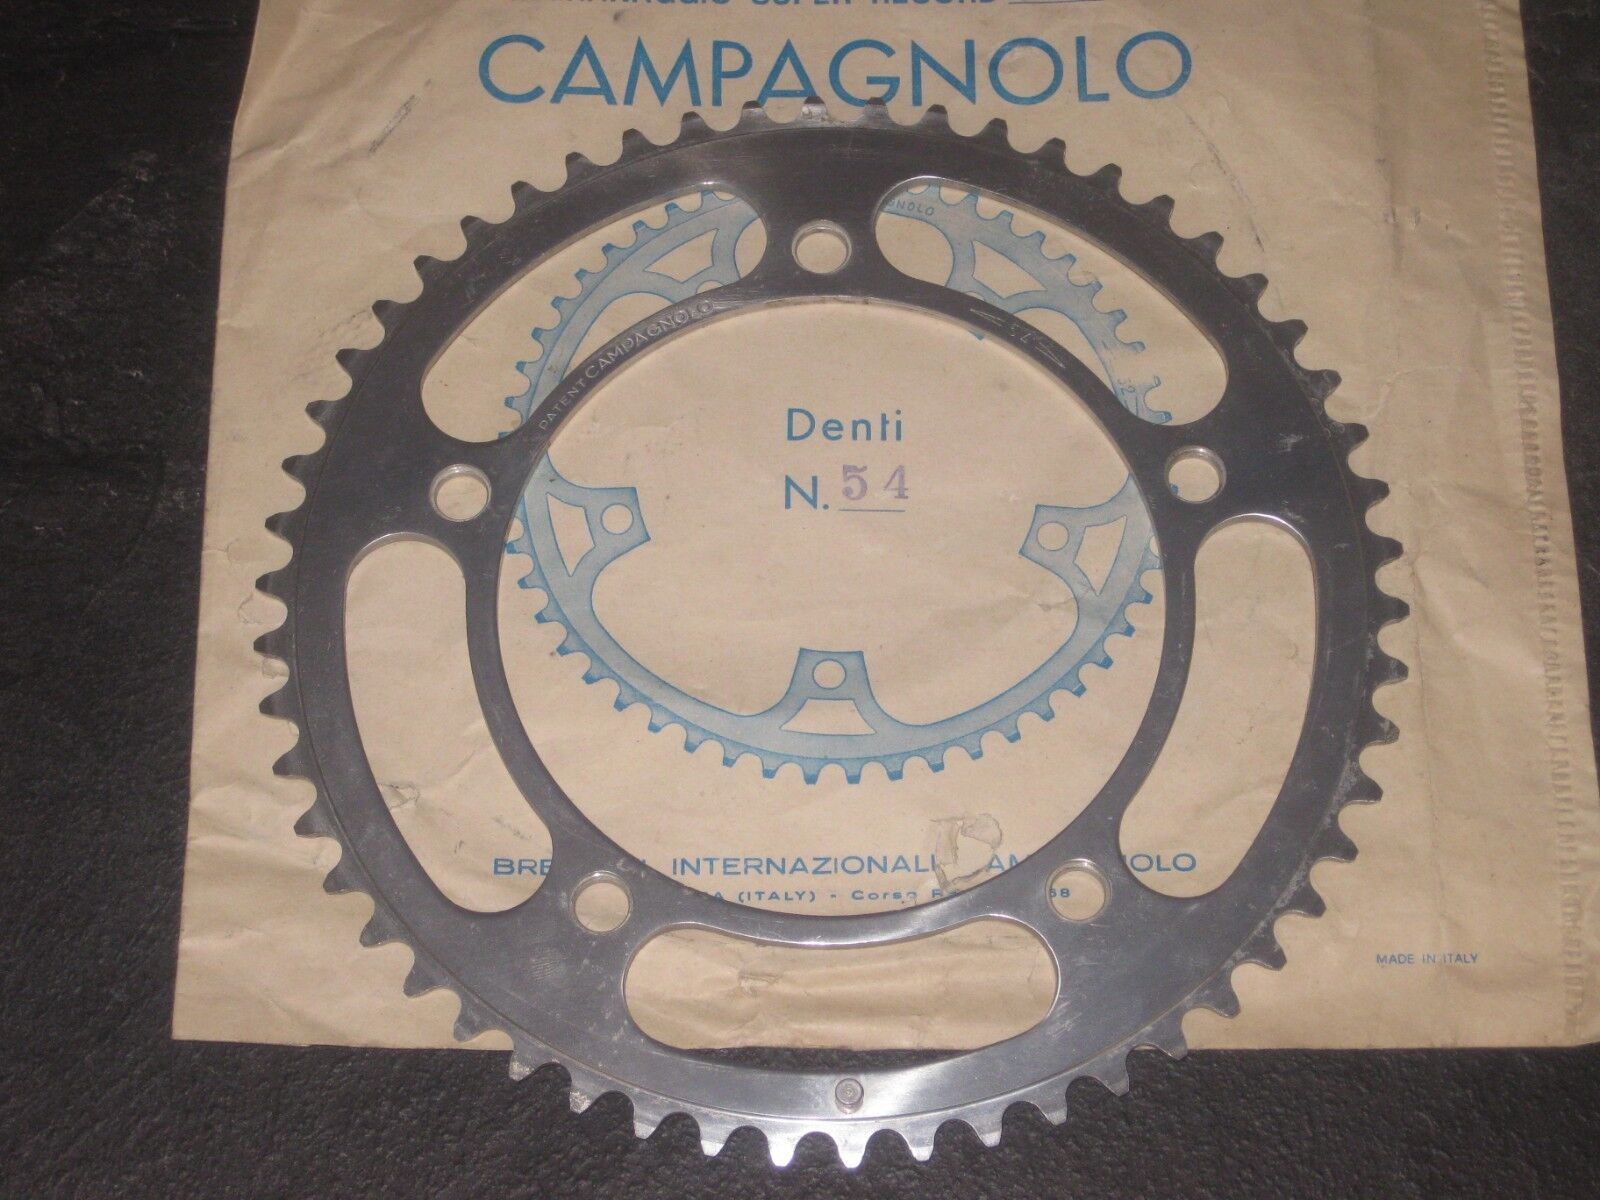 NEW NOS Vintage Campagnolo  Nuovo Record Chainring 54 tooth 151 BCD 88.8mm Eroica  new style